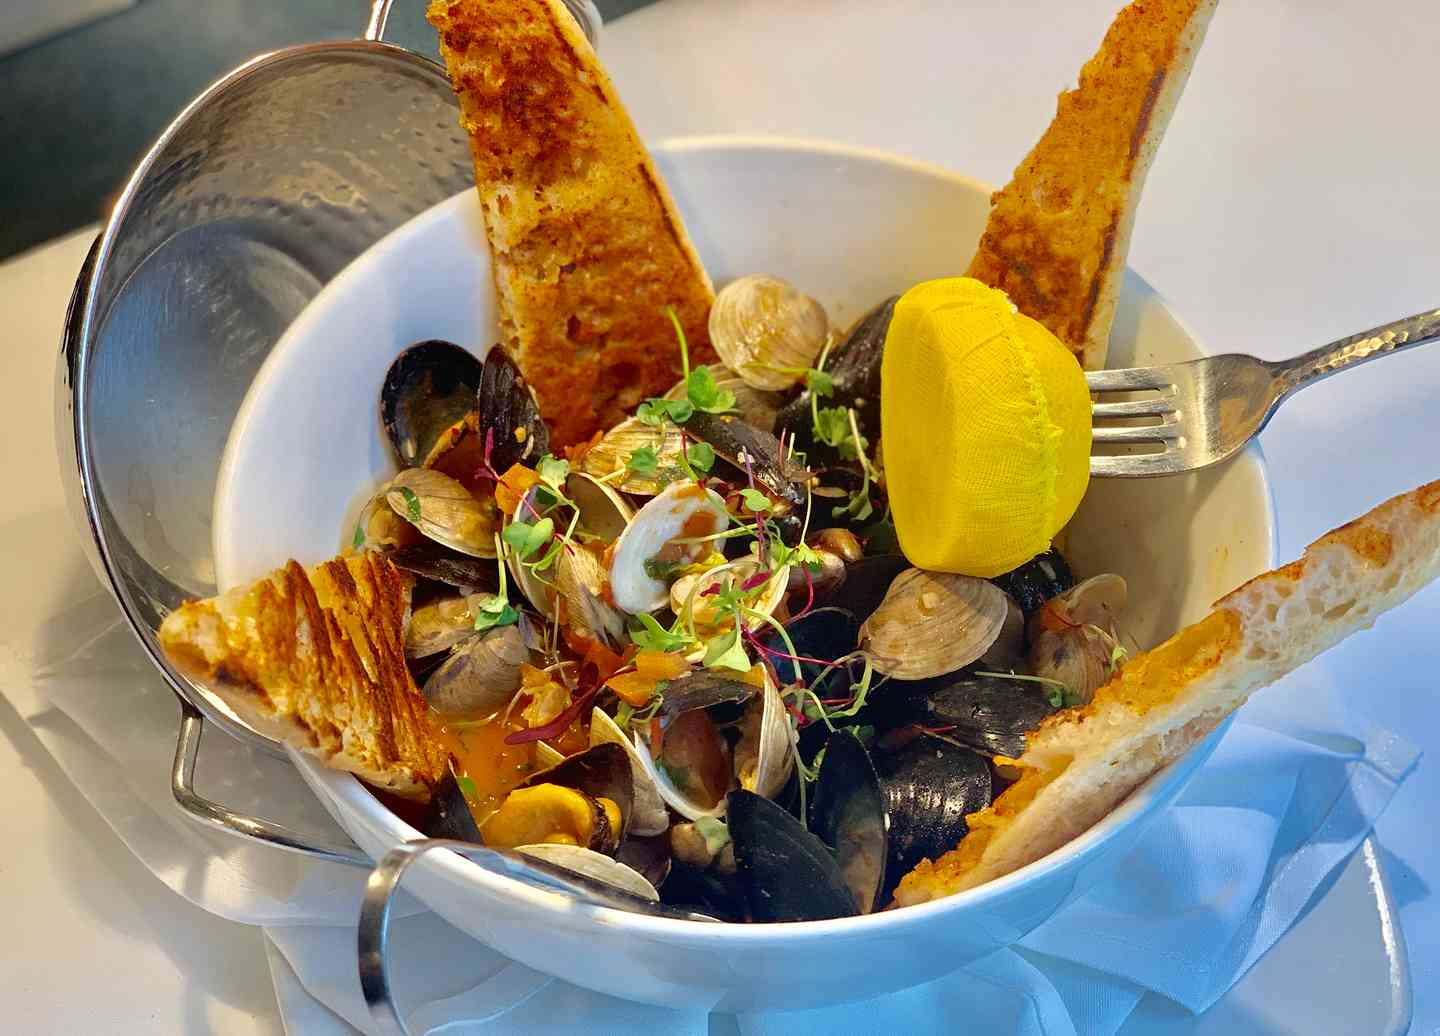 Steamed Clams & Mussels